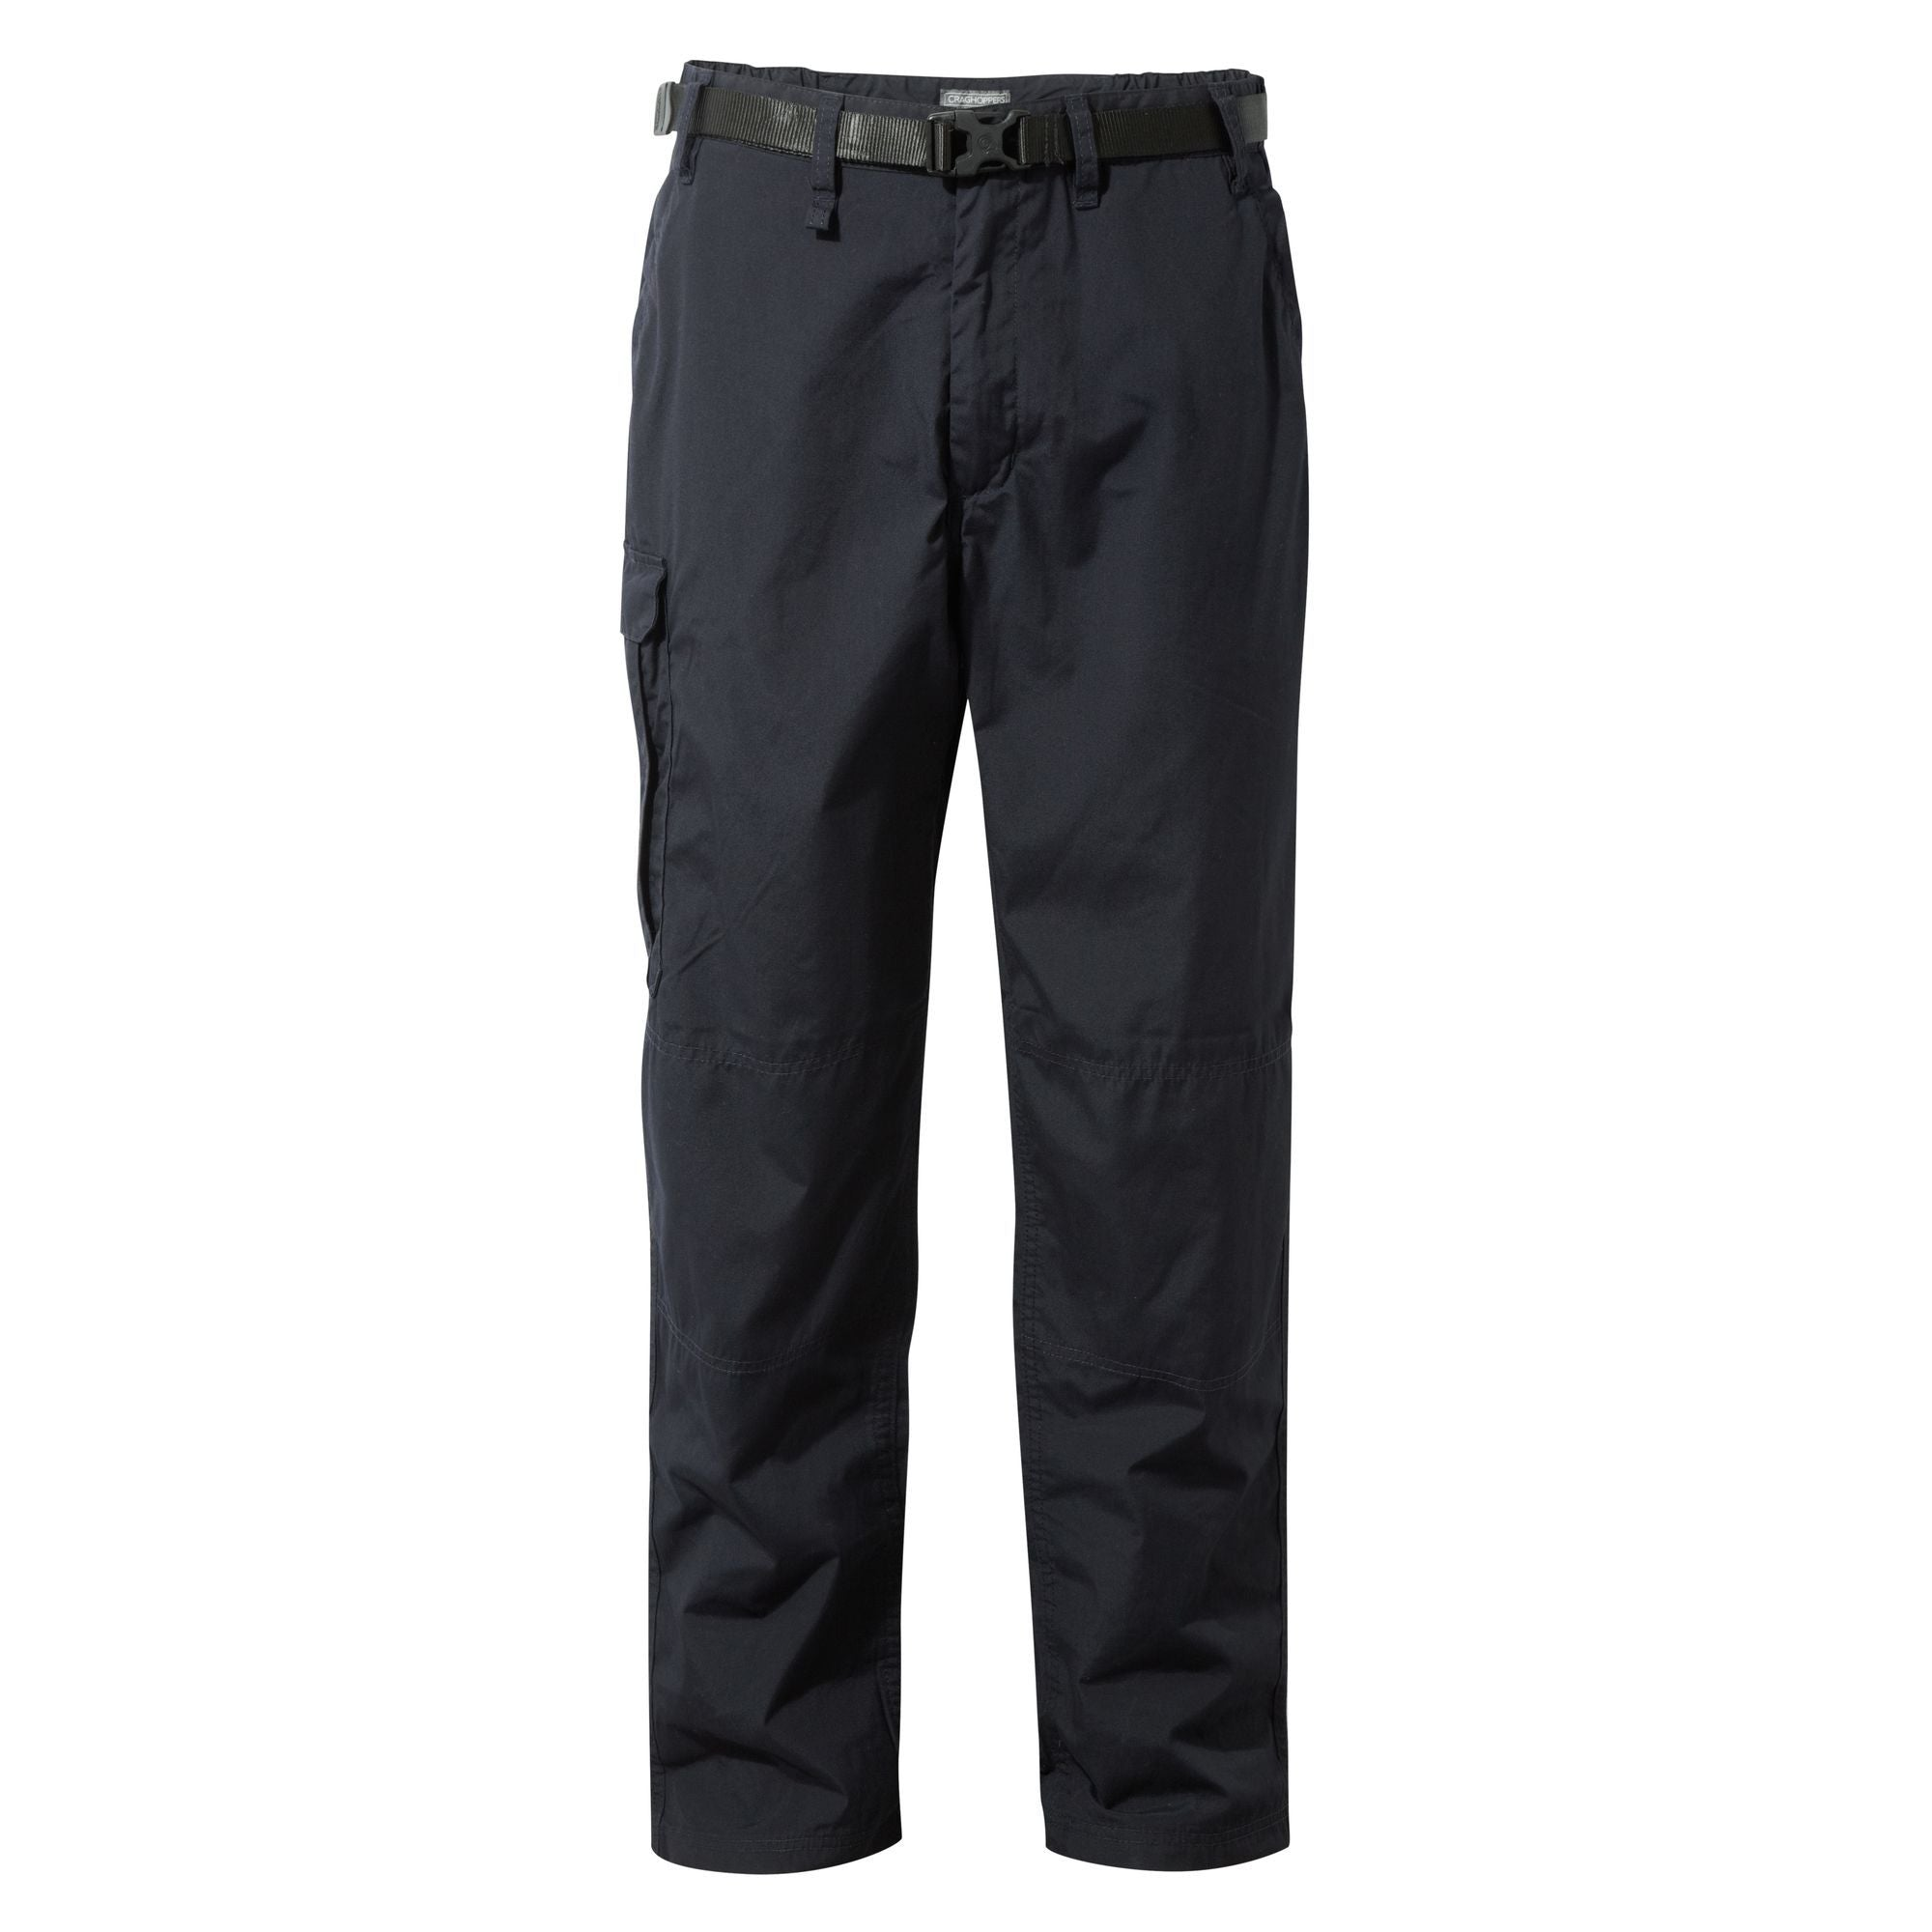 Craghoppers Classic Kiwi Trousers for Men in Dark Navy